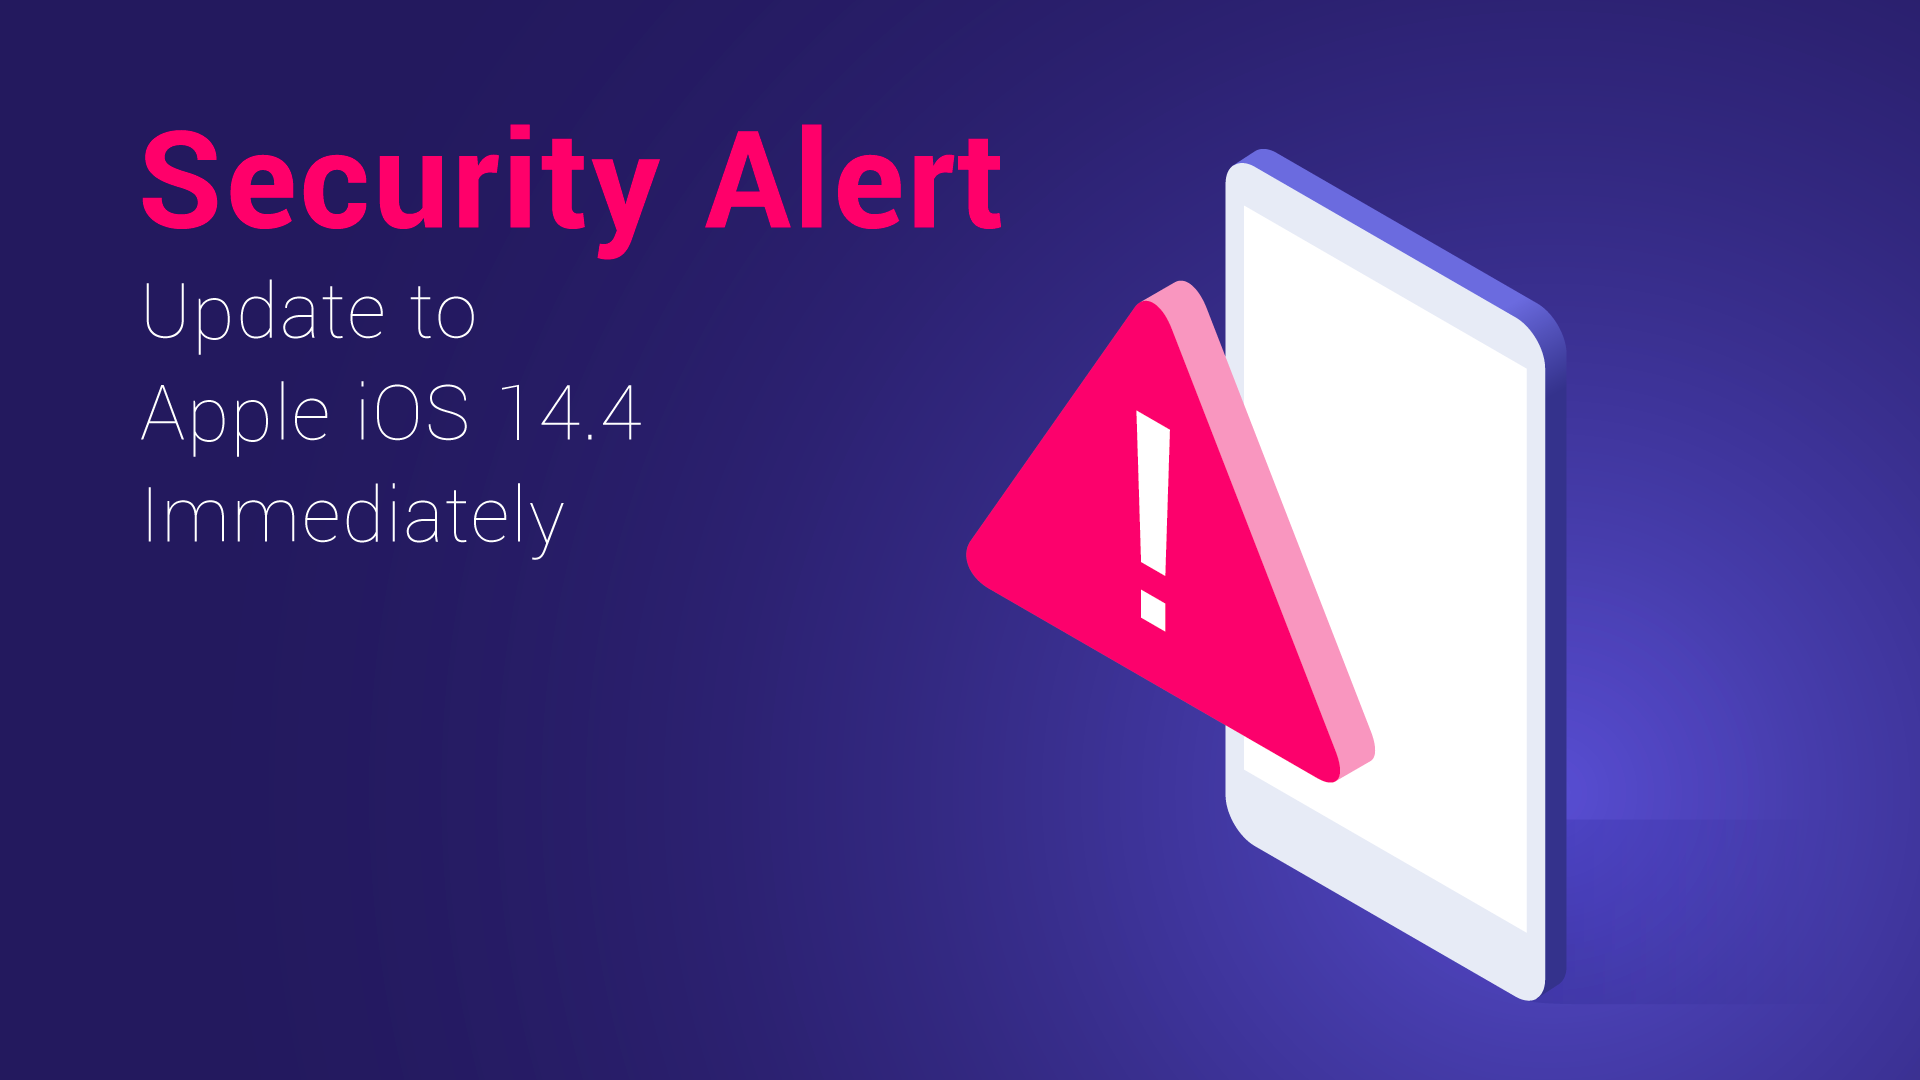 Update Apple iOS Immediately - Security Alert